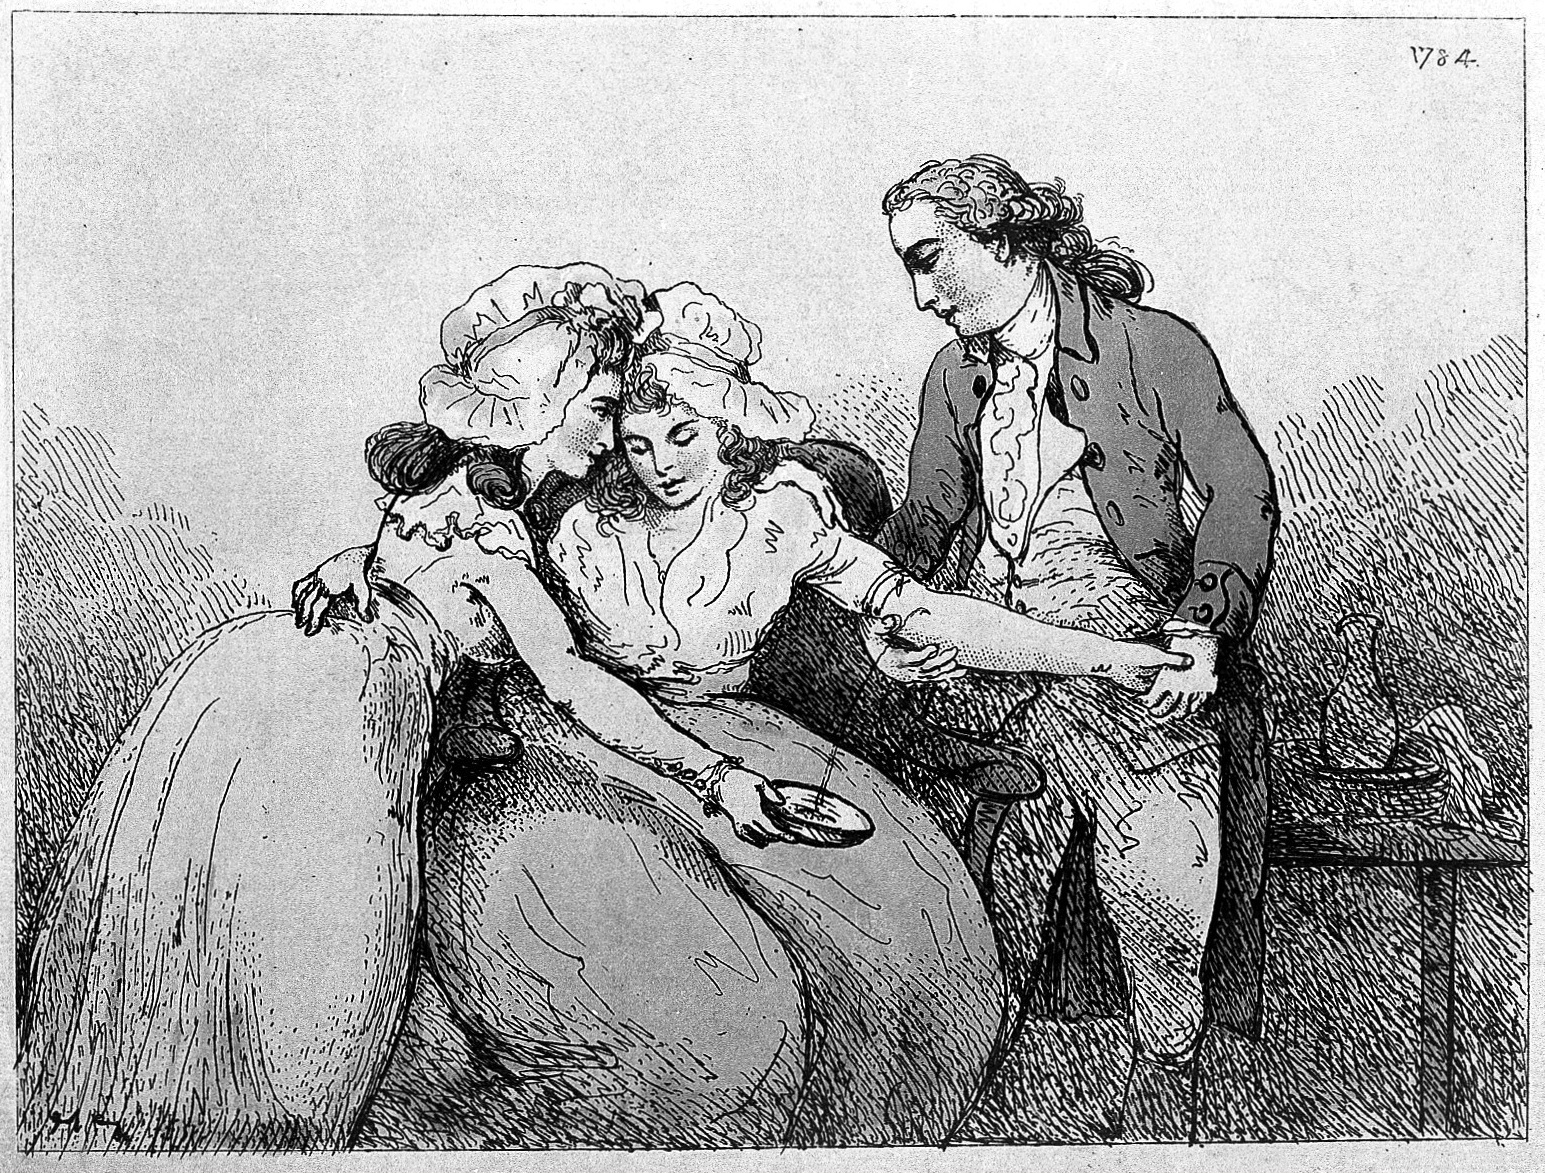 L0005745 A surgeon bleeding the arm of a young woman: she is being co